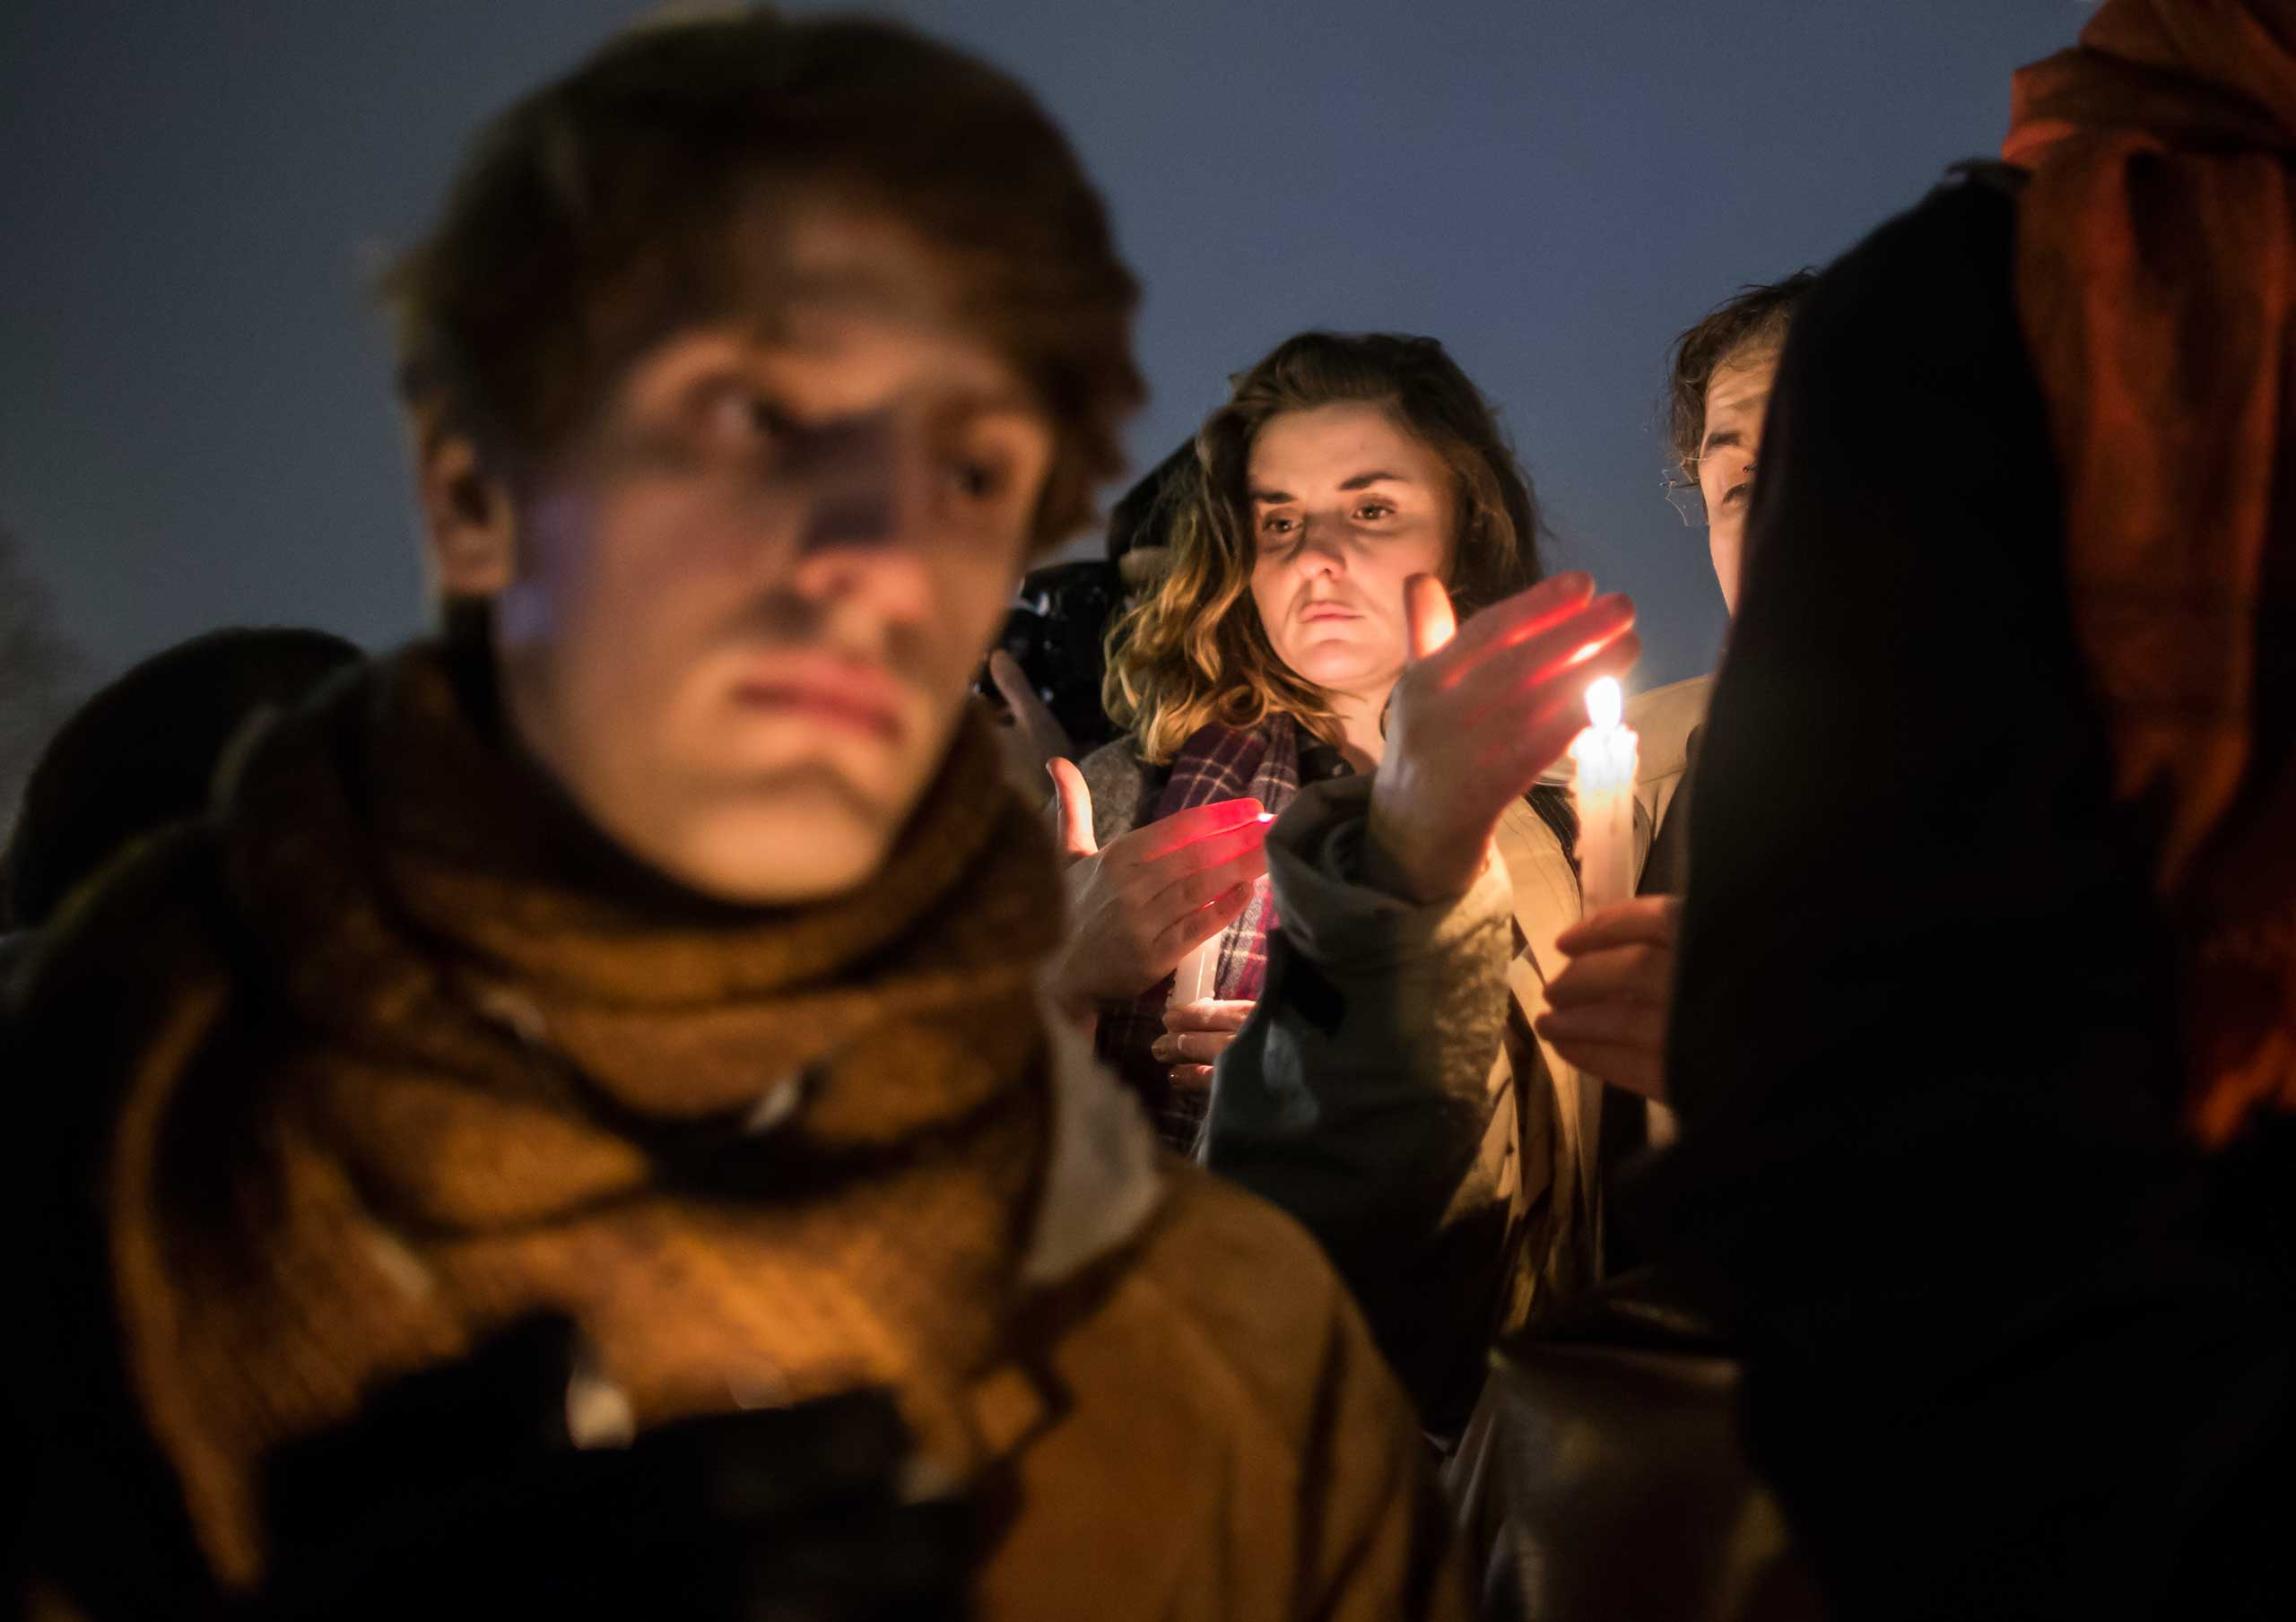 People hold a candle-light vigil as thousands gather silently on Place de la Republique in central Paris hours after the attack by masked gunmen on the <i>Charlie Hebdo</i> headquarters in Paris on  Jan. 7, 2015